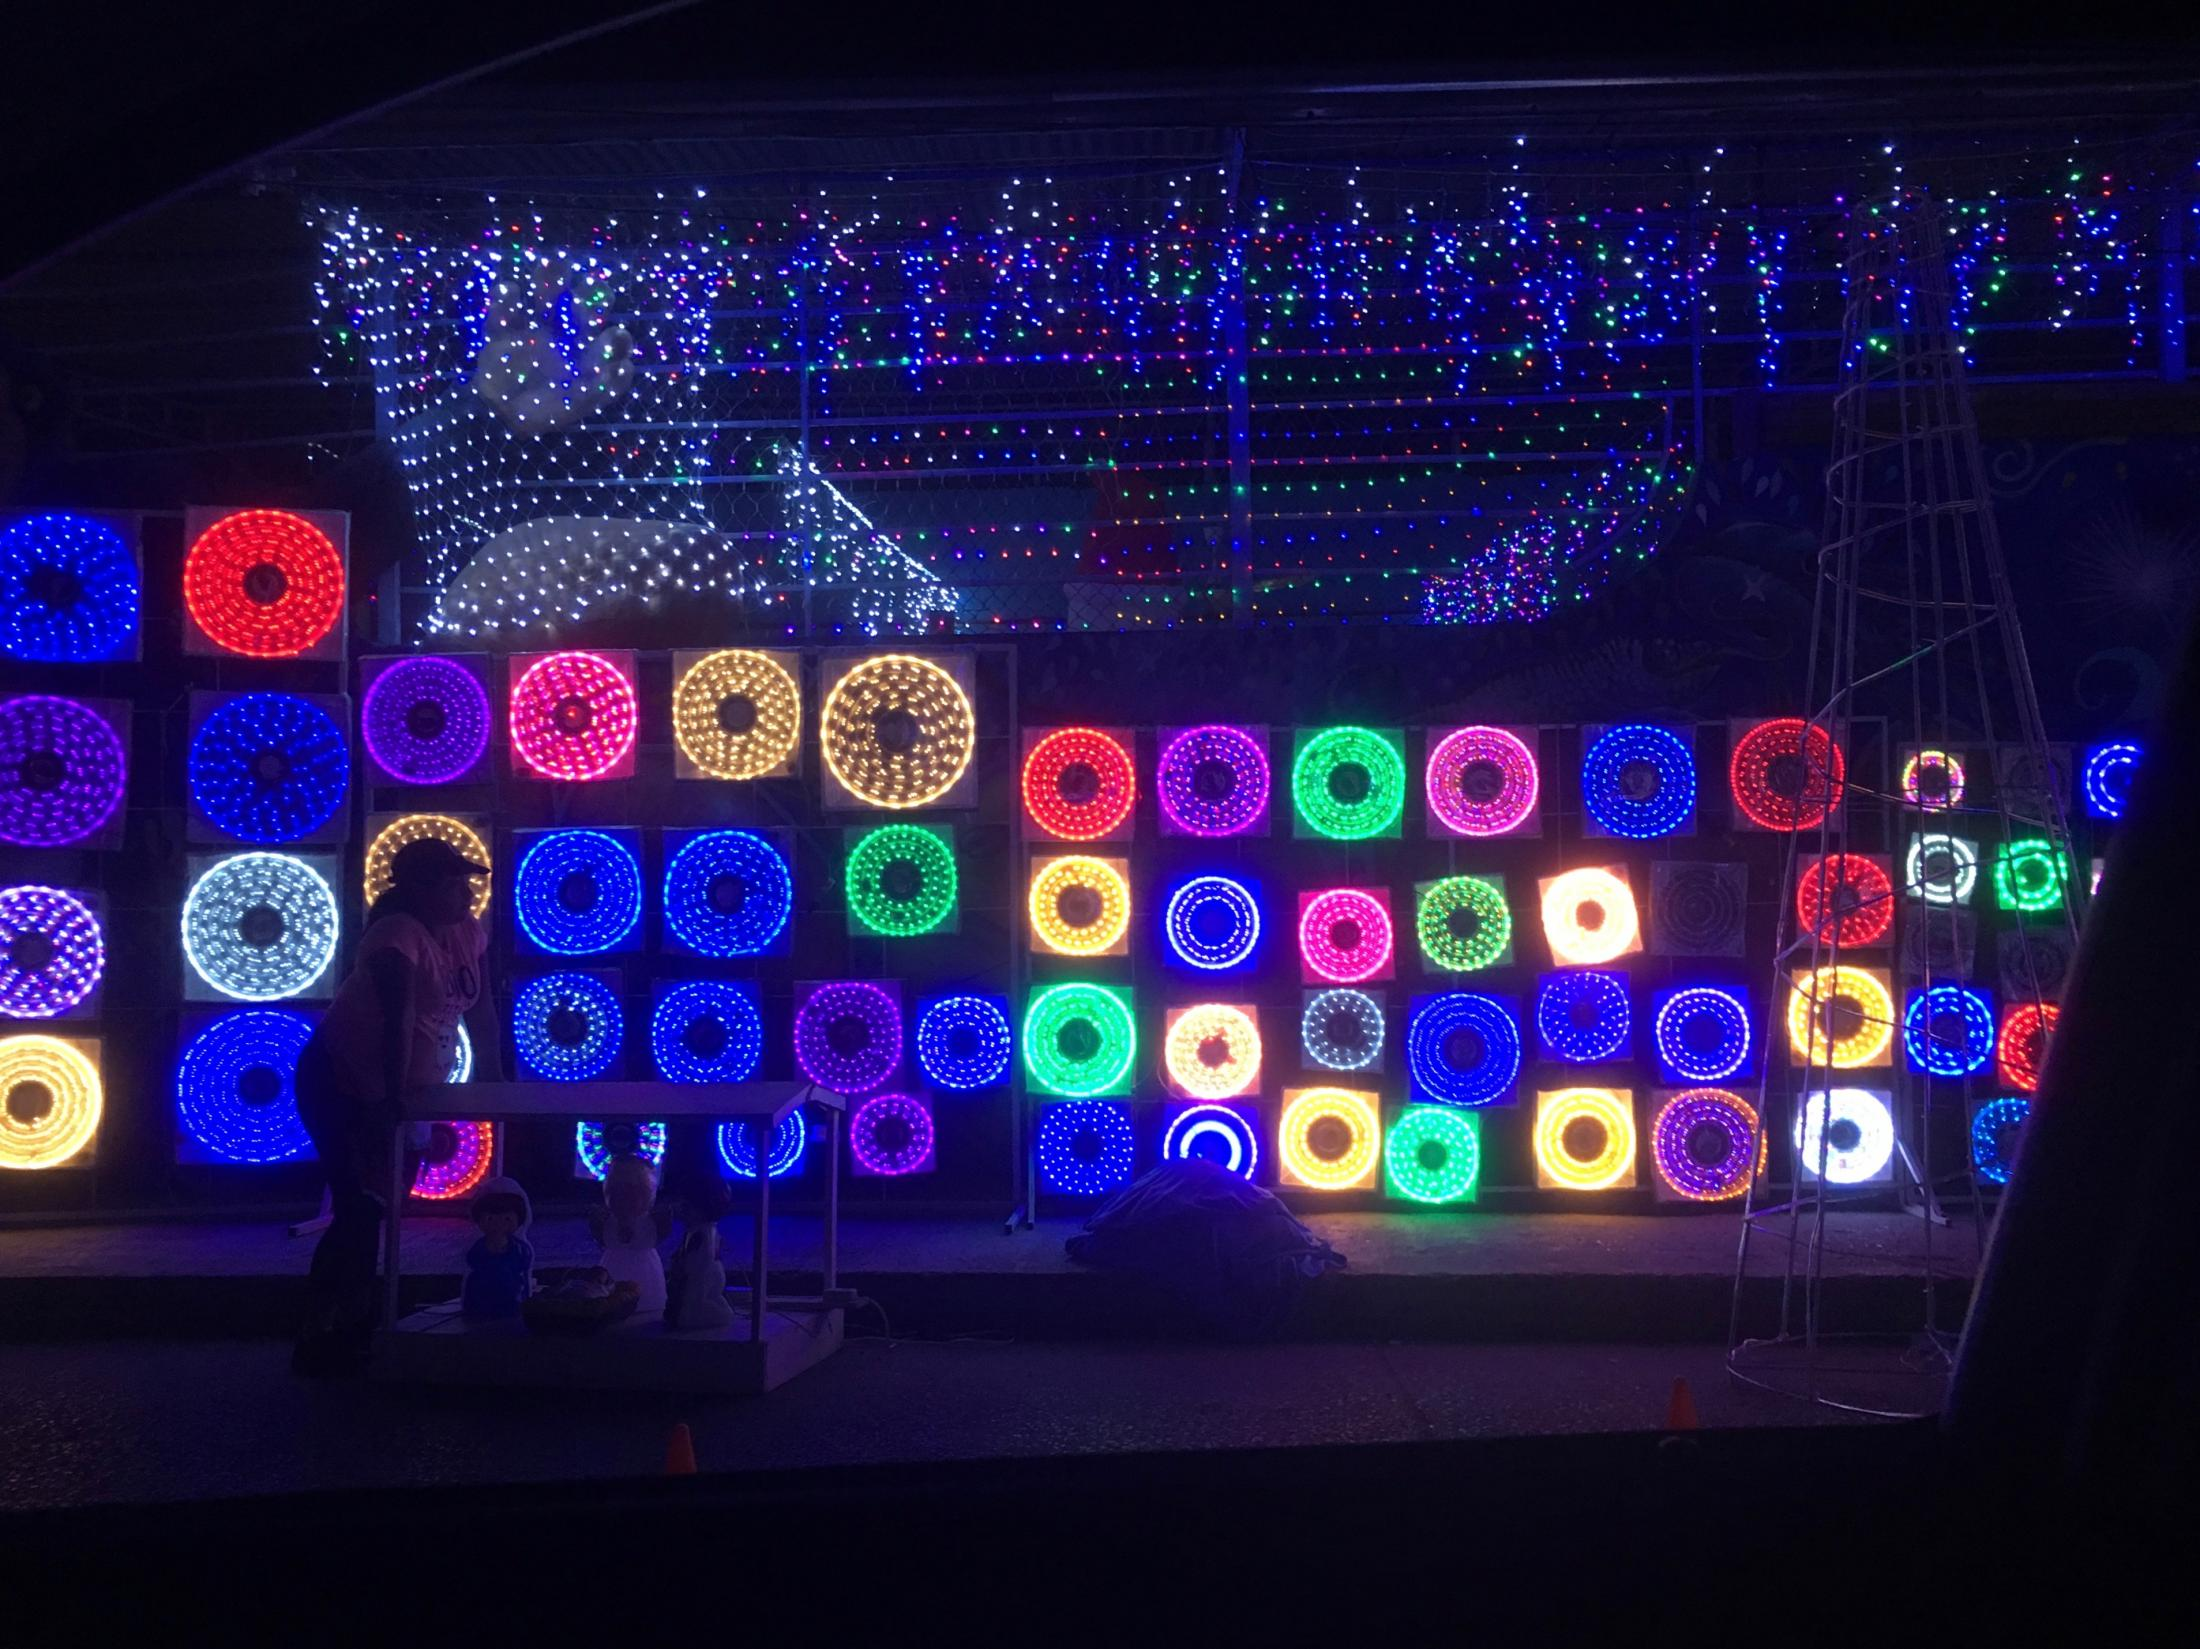 Tampico, Tamaulipas México. 2018. A store's exteriorfilled with cheap and colorful Christmas lights for sale,allowing customers to easily compare all options side to side . It is common to see these decorated walls outside of specialty stores, they are usually found in thedowntown area of Mexican cities. I had picked up my mother at the bus station that night. On our way home we saw many bright lights coming from a street. We followed themto find out what they were.